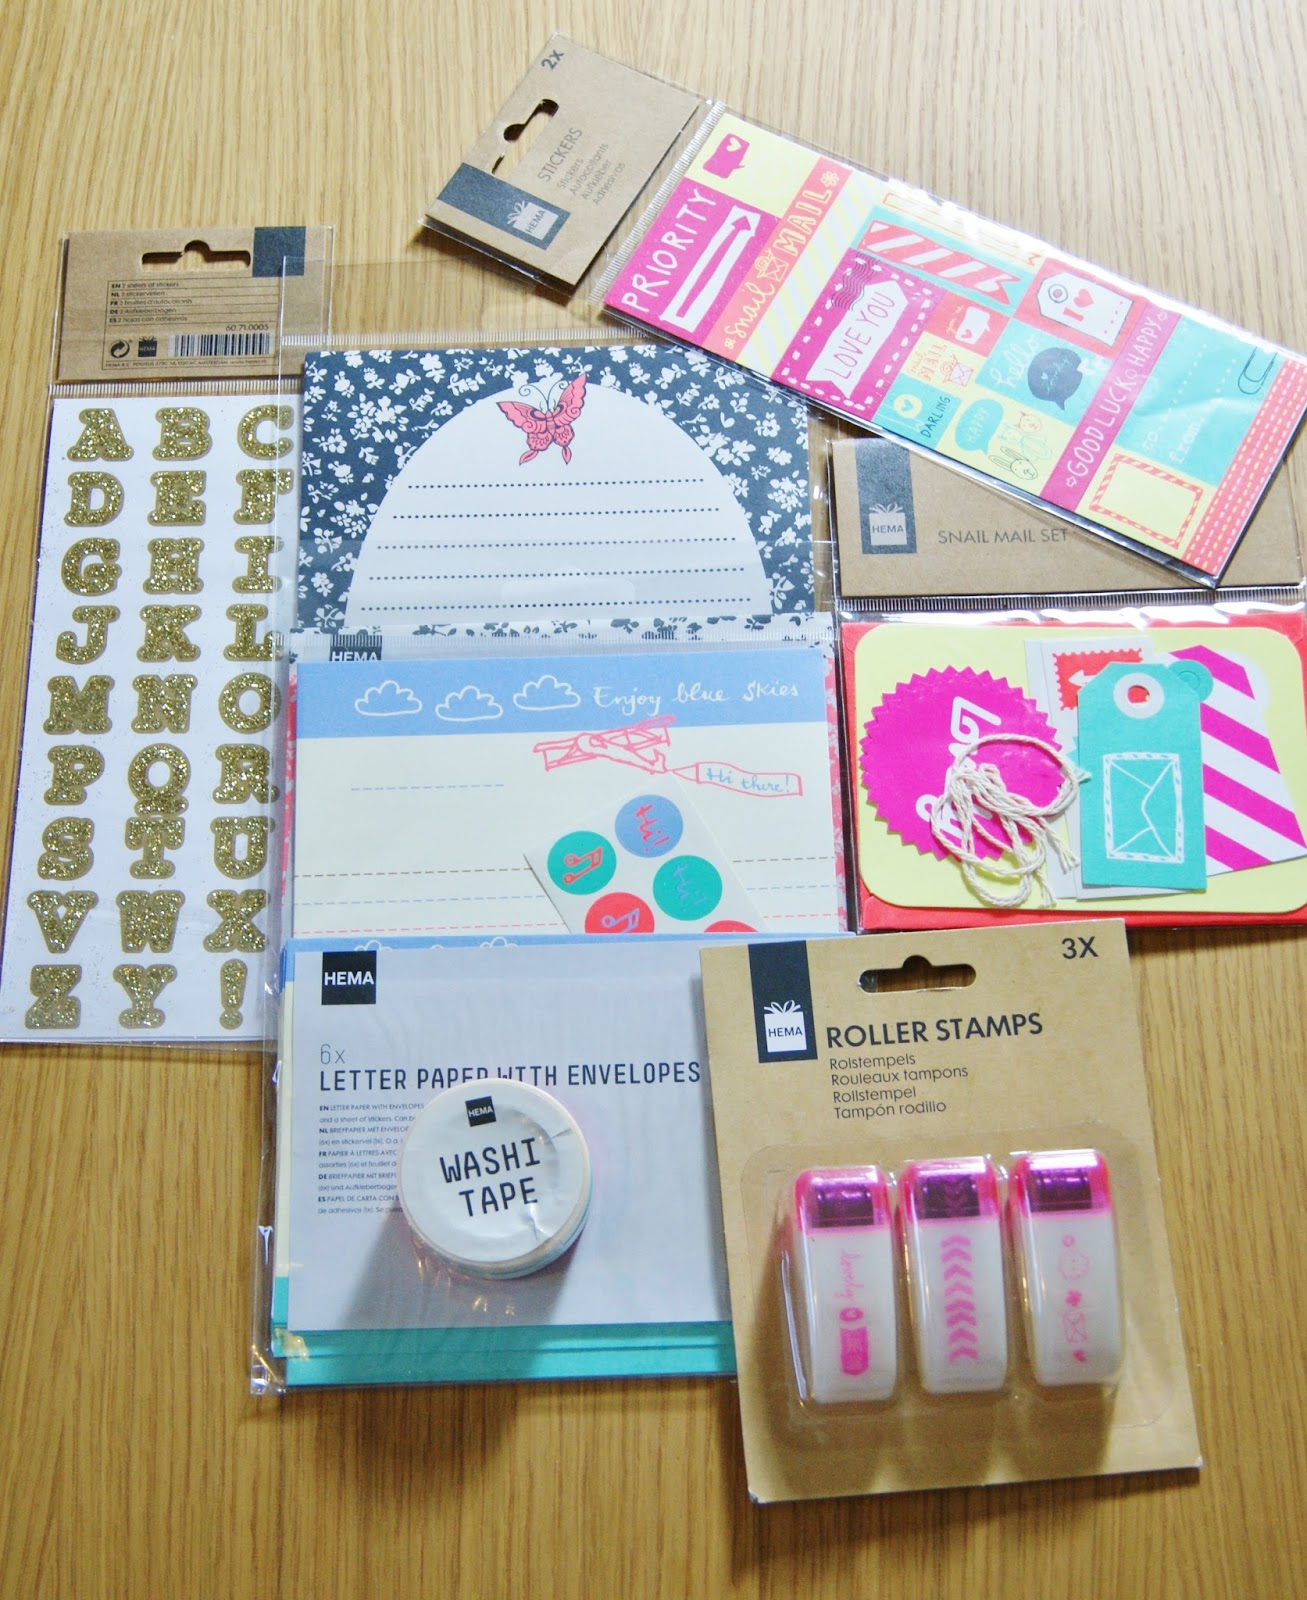 Hema UK Stationery Haul